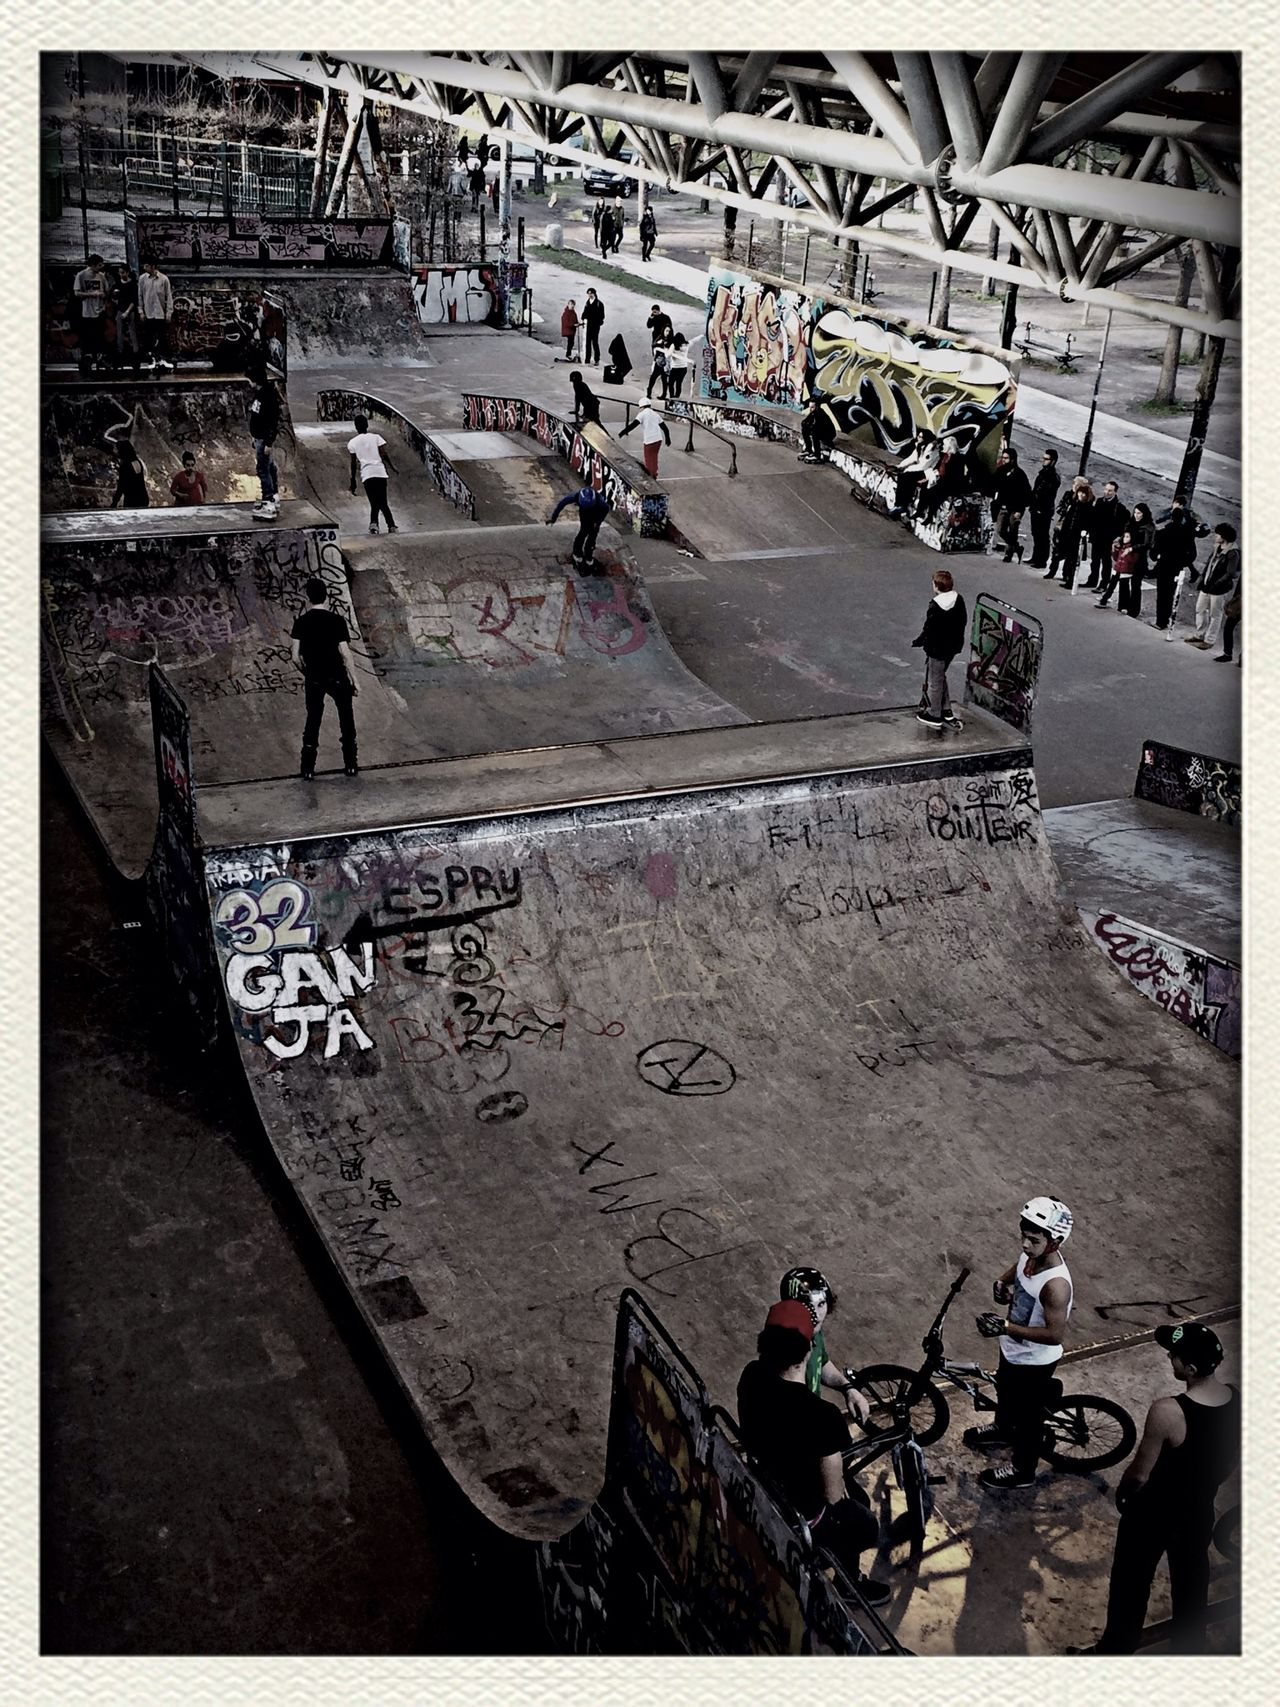 Skate Paris Bercy Village